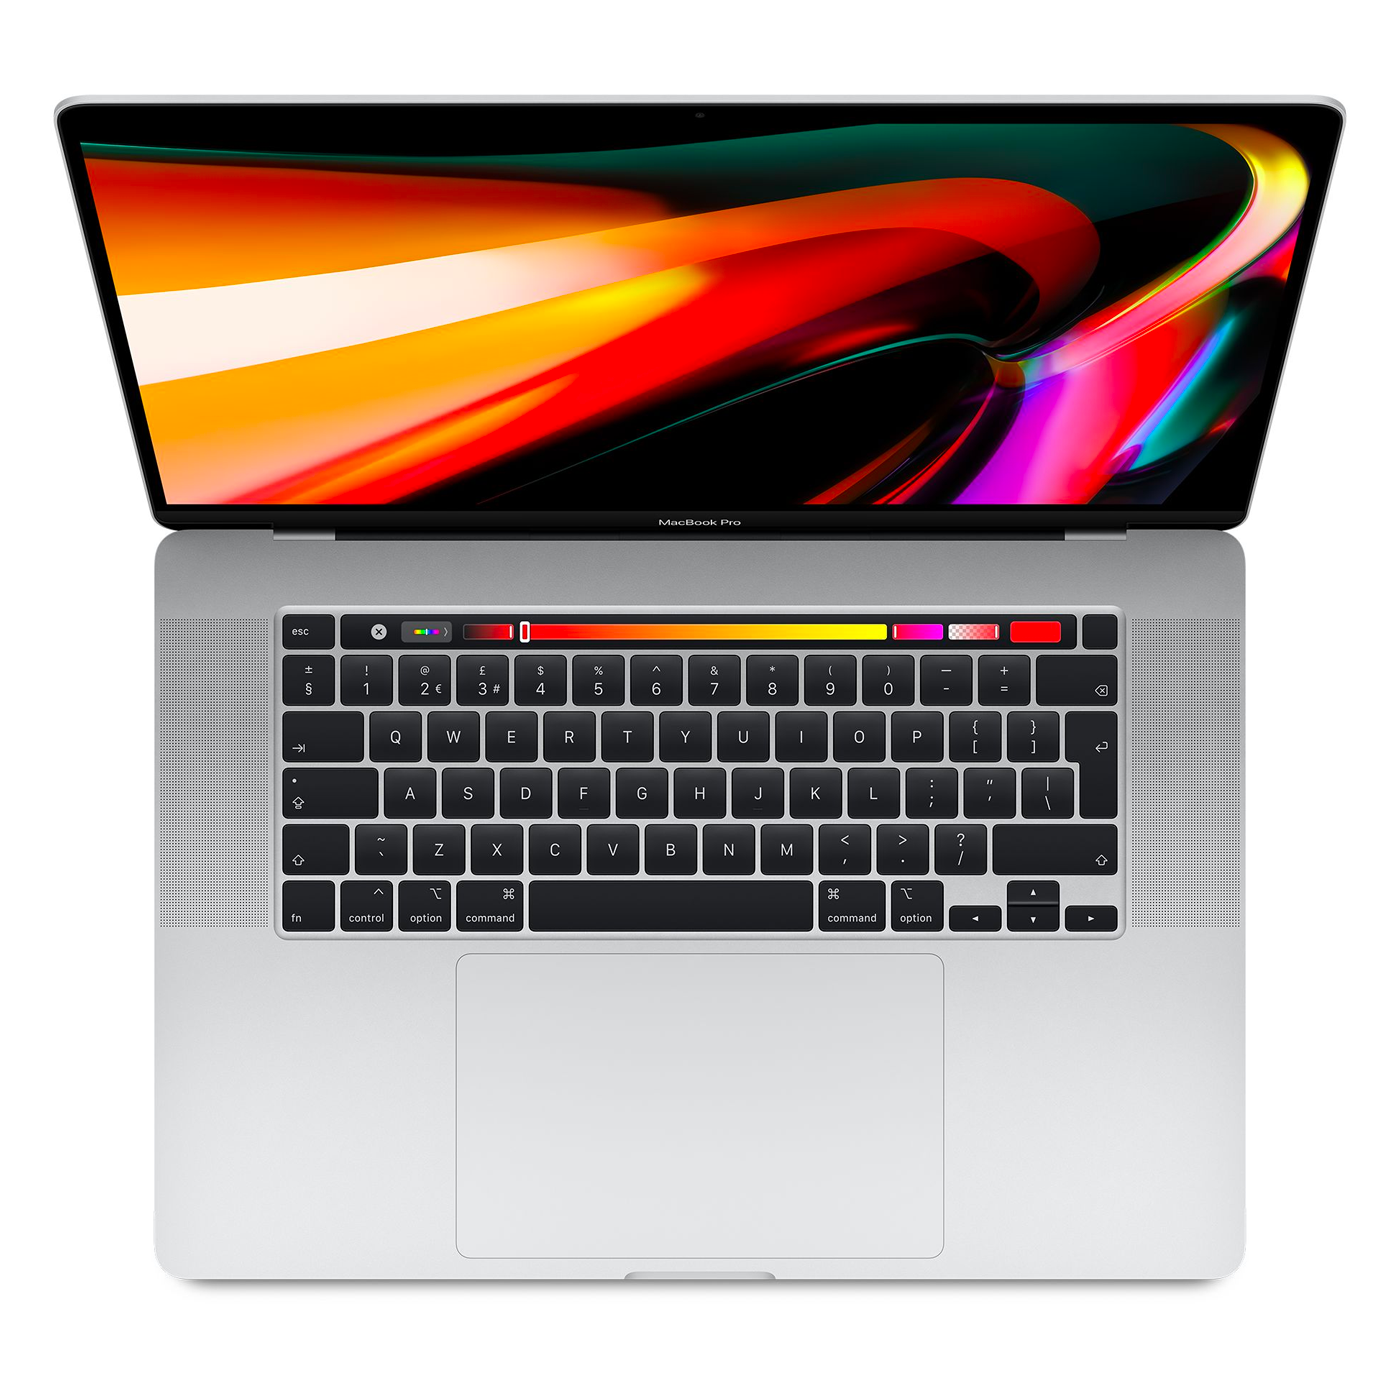 An image of a MacBook Pro 16 inch with a touchbar